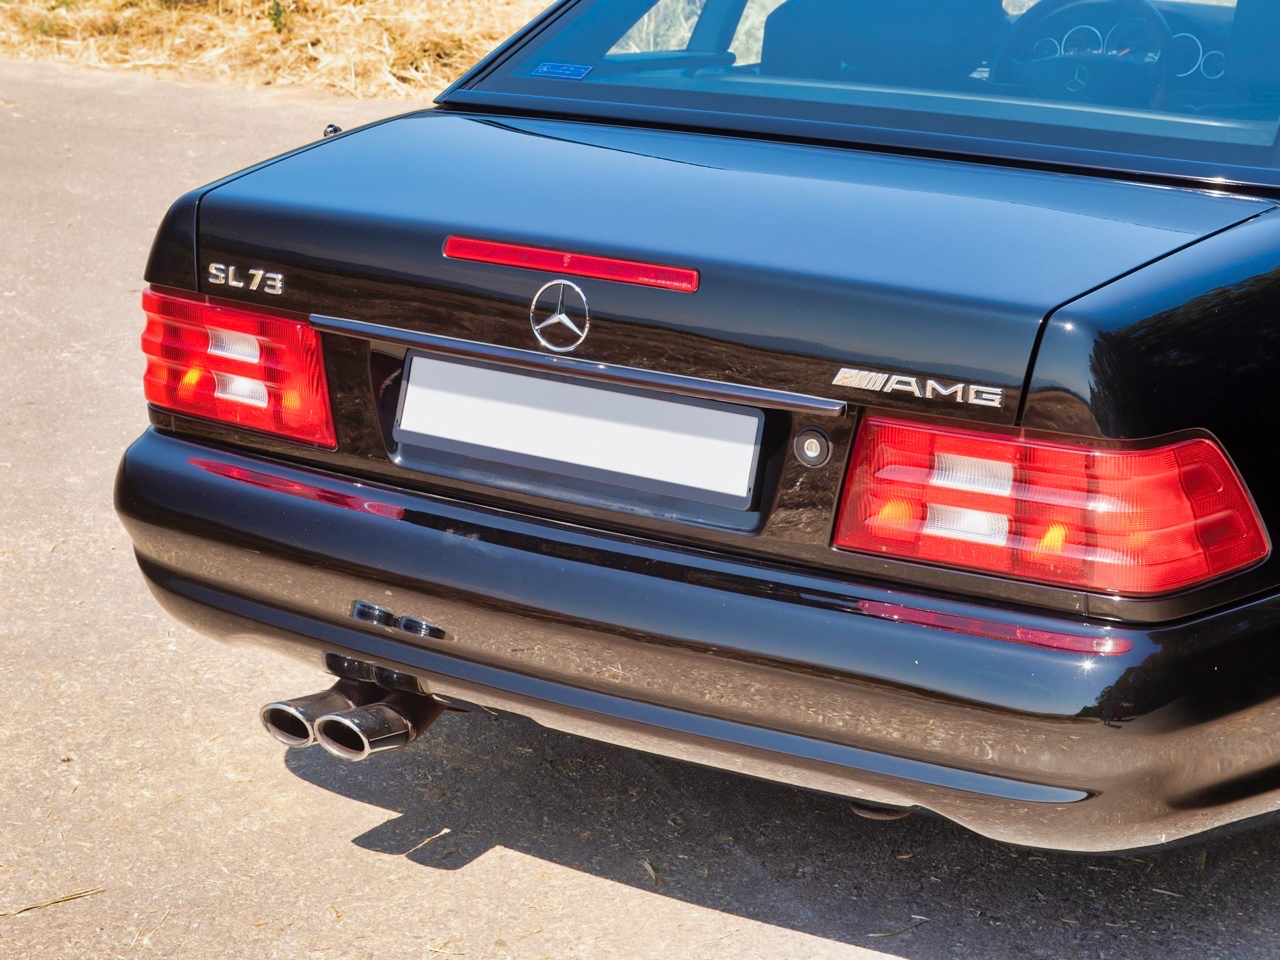 Mercedes SL 73 AMG - Sleeper Delux' 3